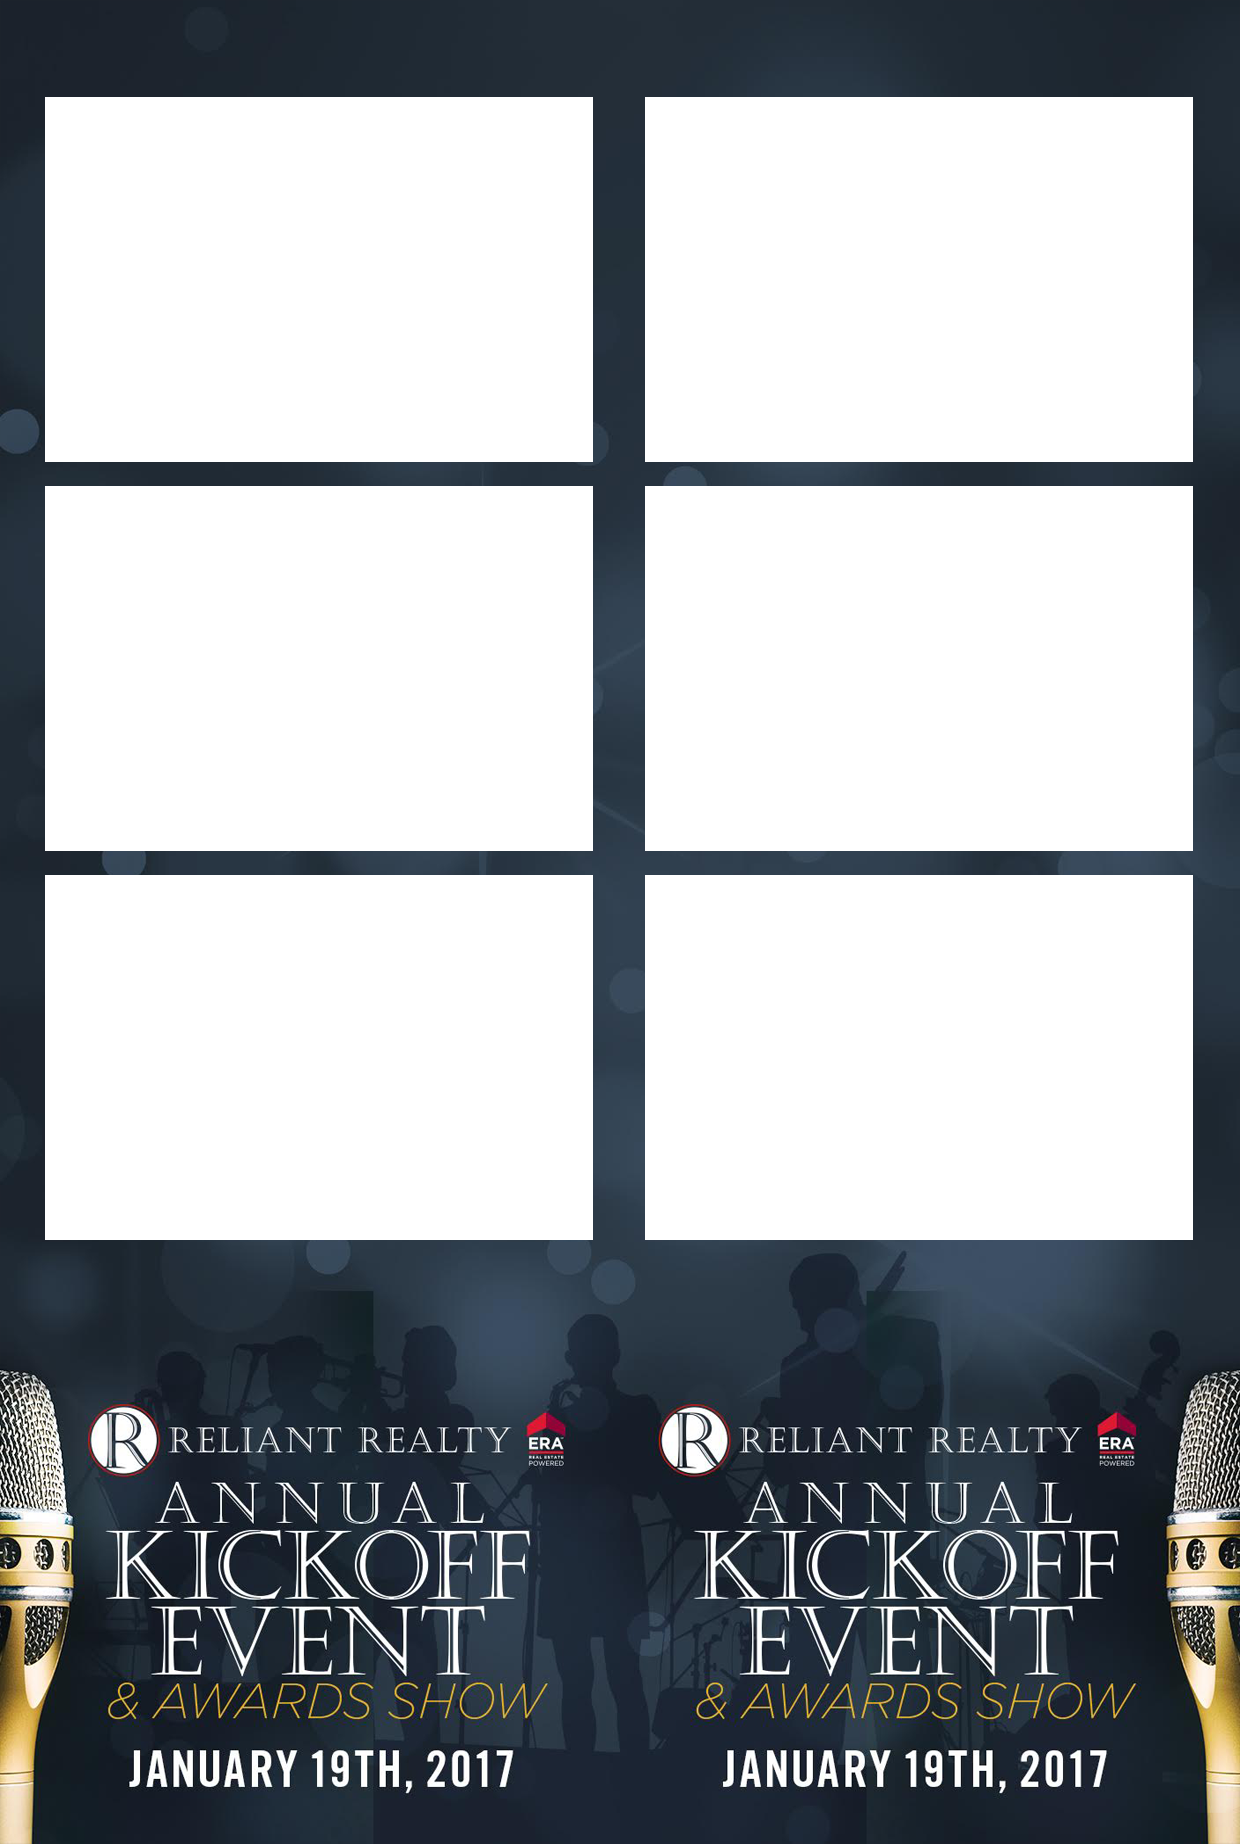 01-19-17 Reliant Template.png